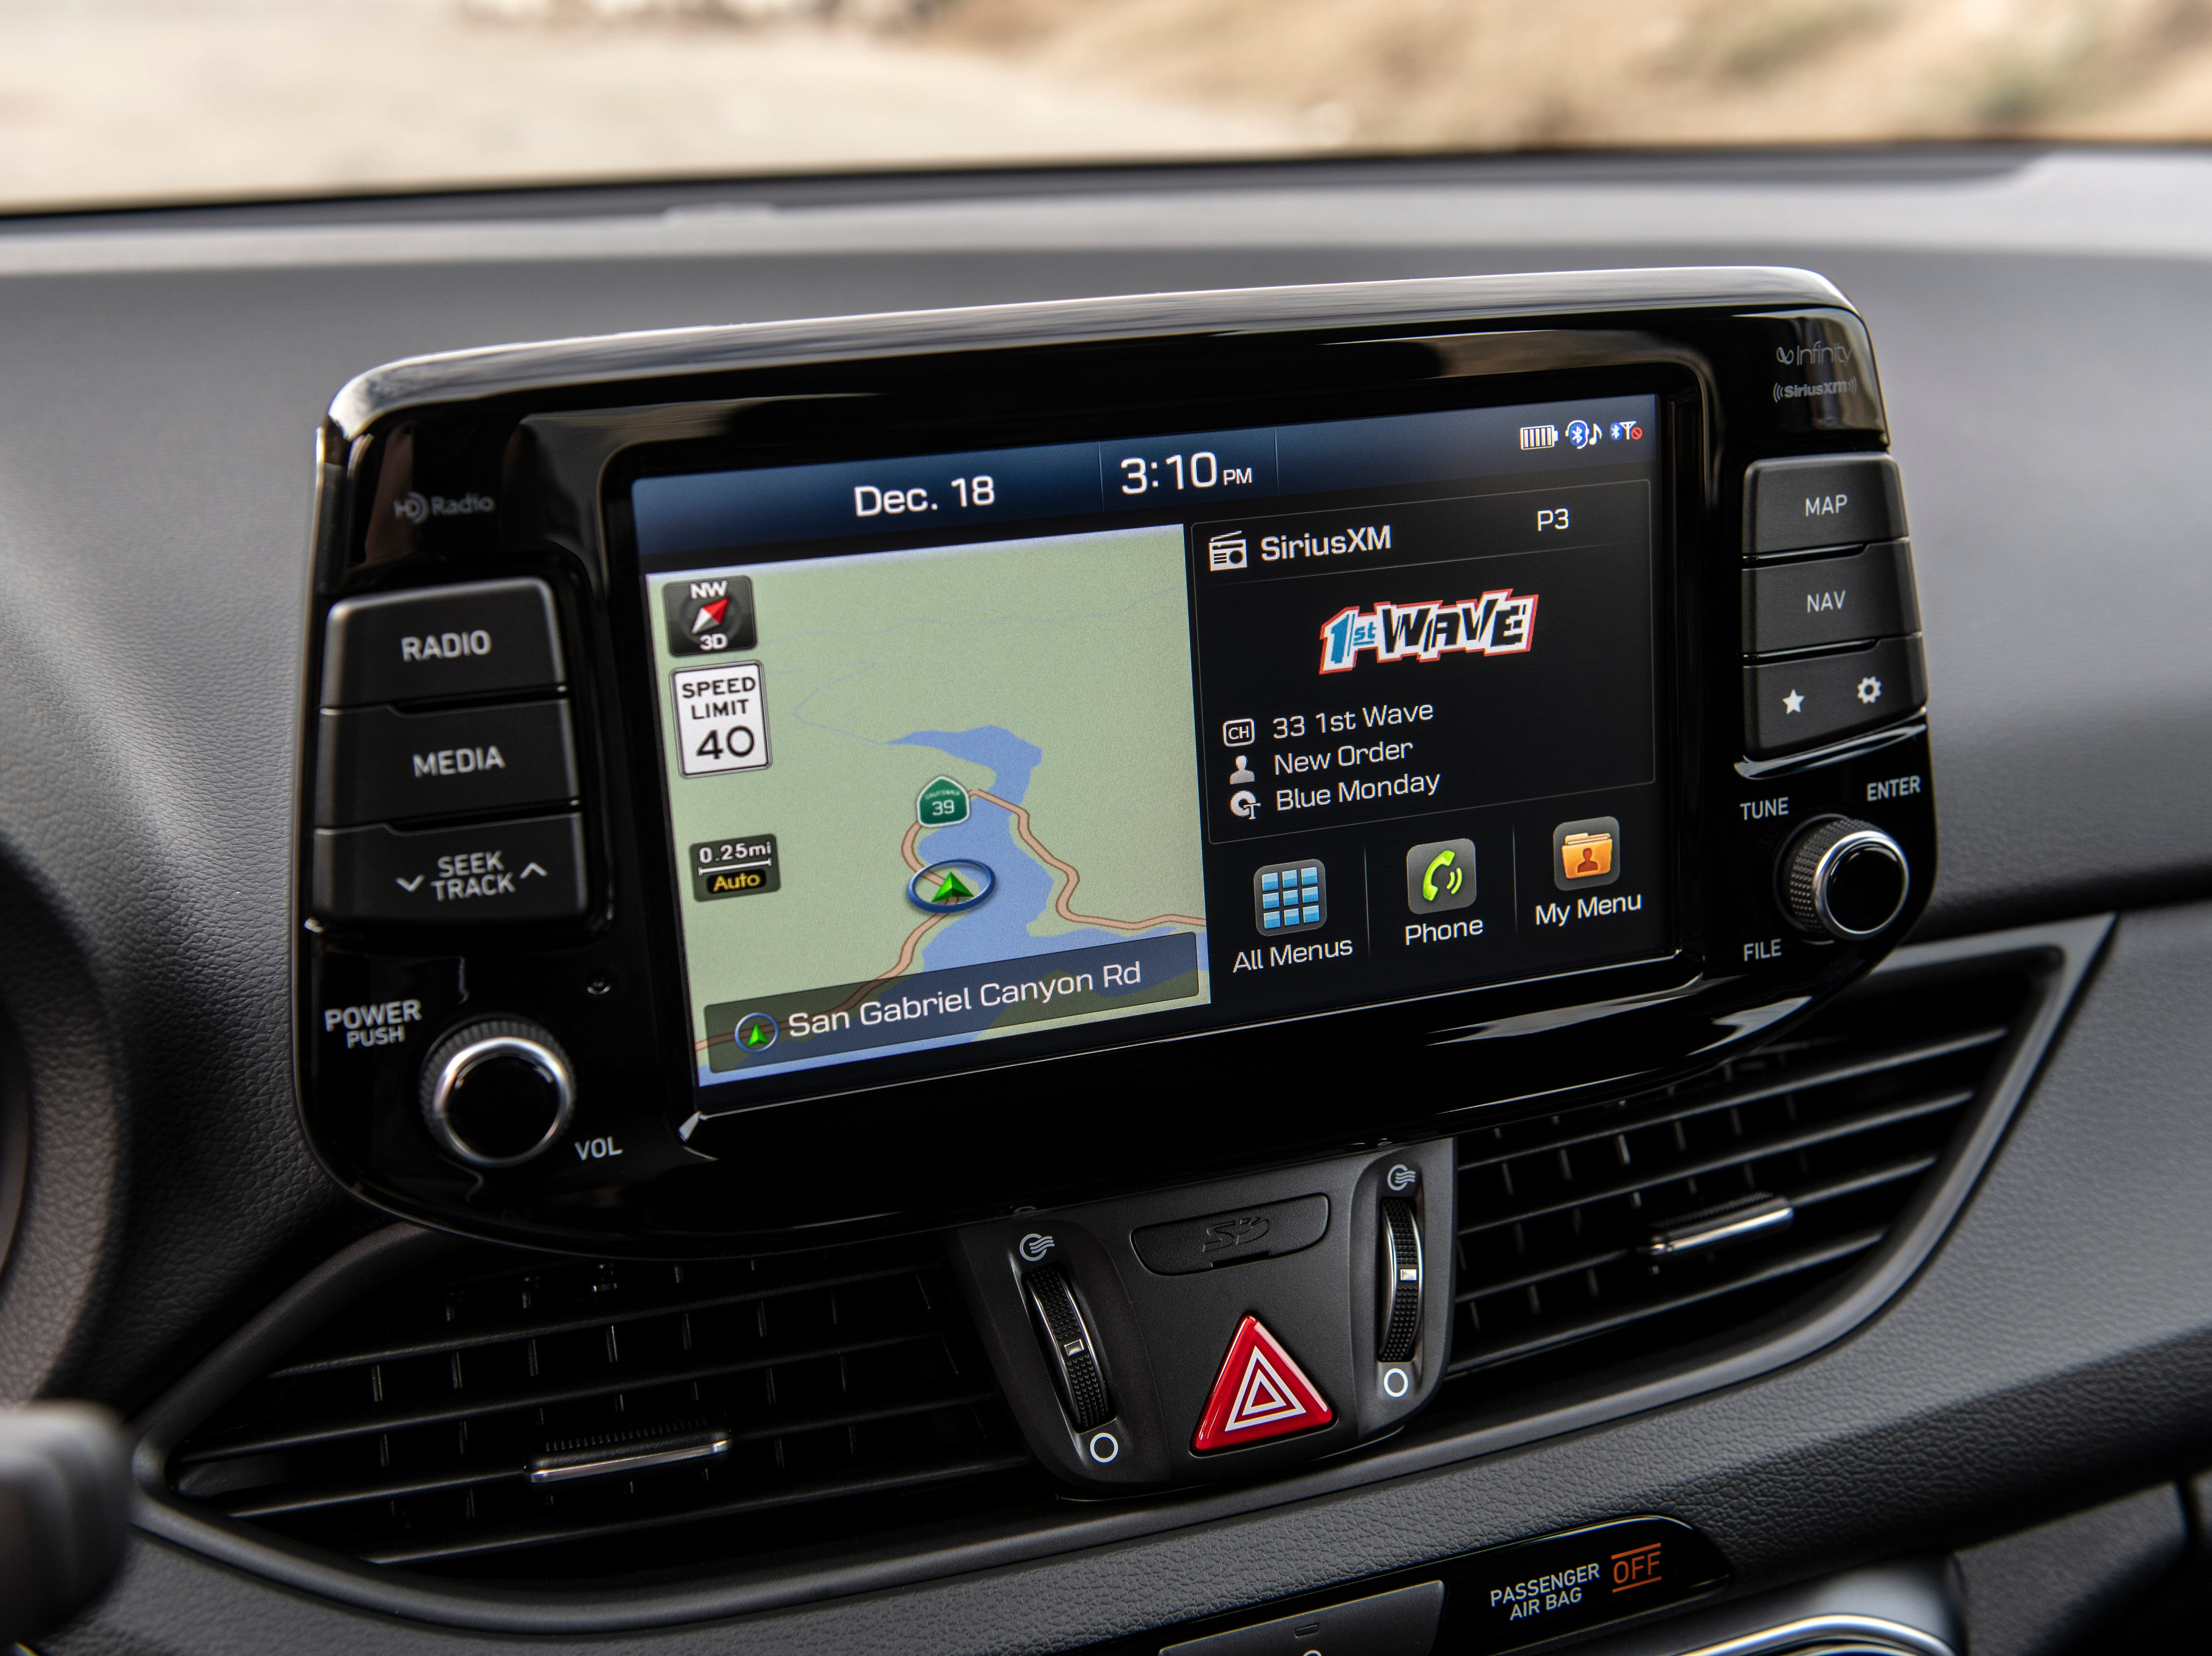 """""""Available on the 2019 Elantra N Line is Hyundai's AVN 5.0 infotainment system. This system features a fast processor for greater responsiveness, as well as an eight-inch screen. Using presets with AVN 5.0 is a snap because AM, FM and SiriusXM channels are combined on one screen. AVN 5.0 also includes HERE HD Traffic (without a subscription), bird's eye view in Navigation maps and drivers get traffic flow and incident data without ever paying for a subscription via HD Radio."""""""